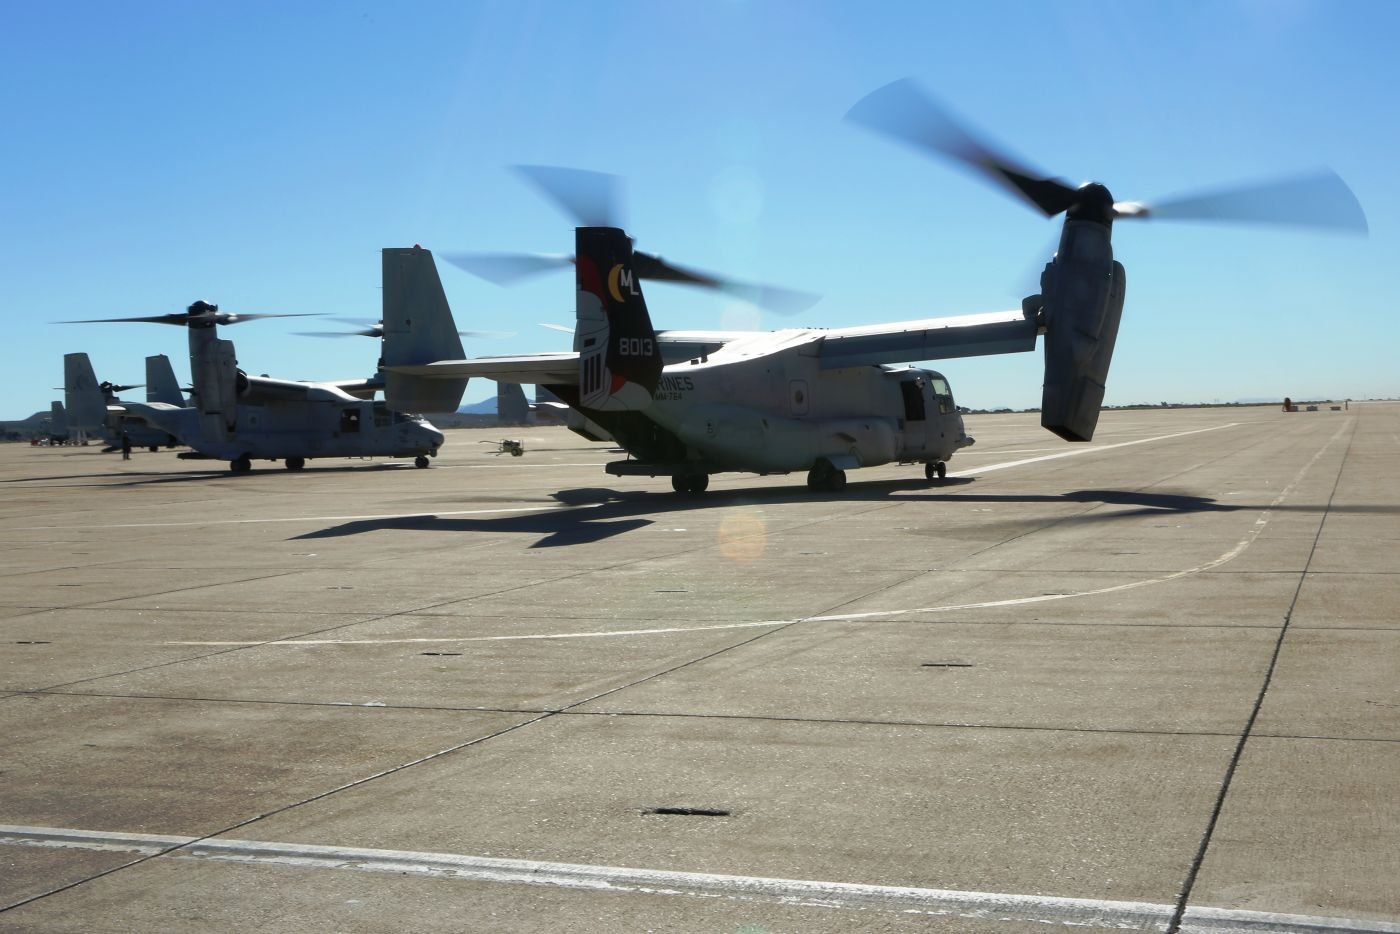 Osprey Aircrafts Arrive in Brazil to Support Unitas Amphibious